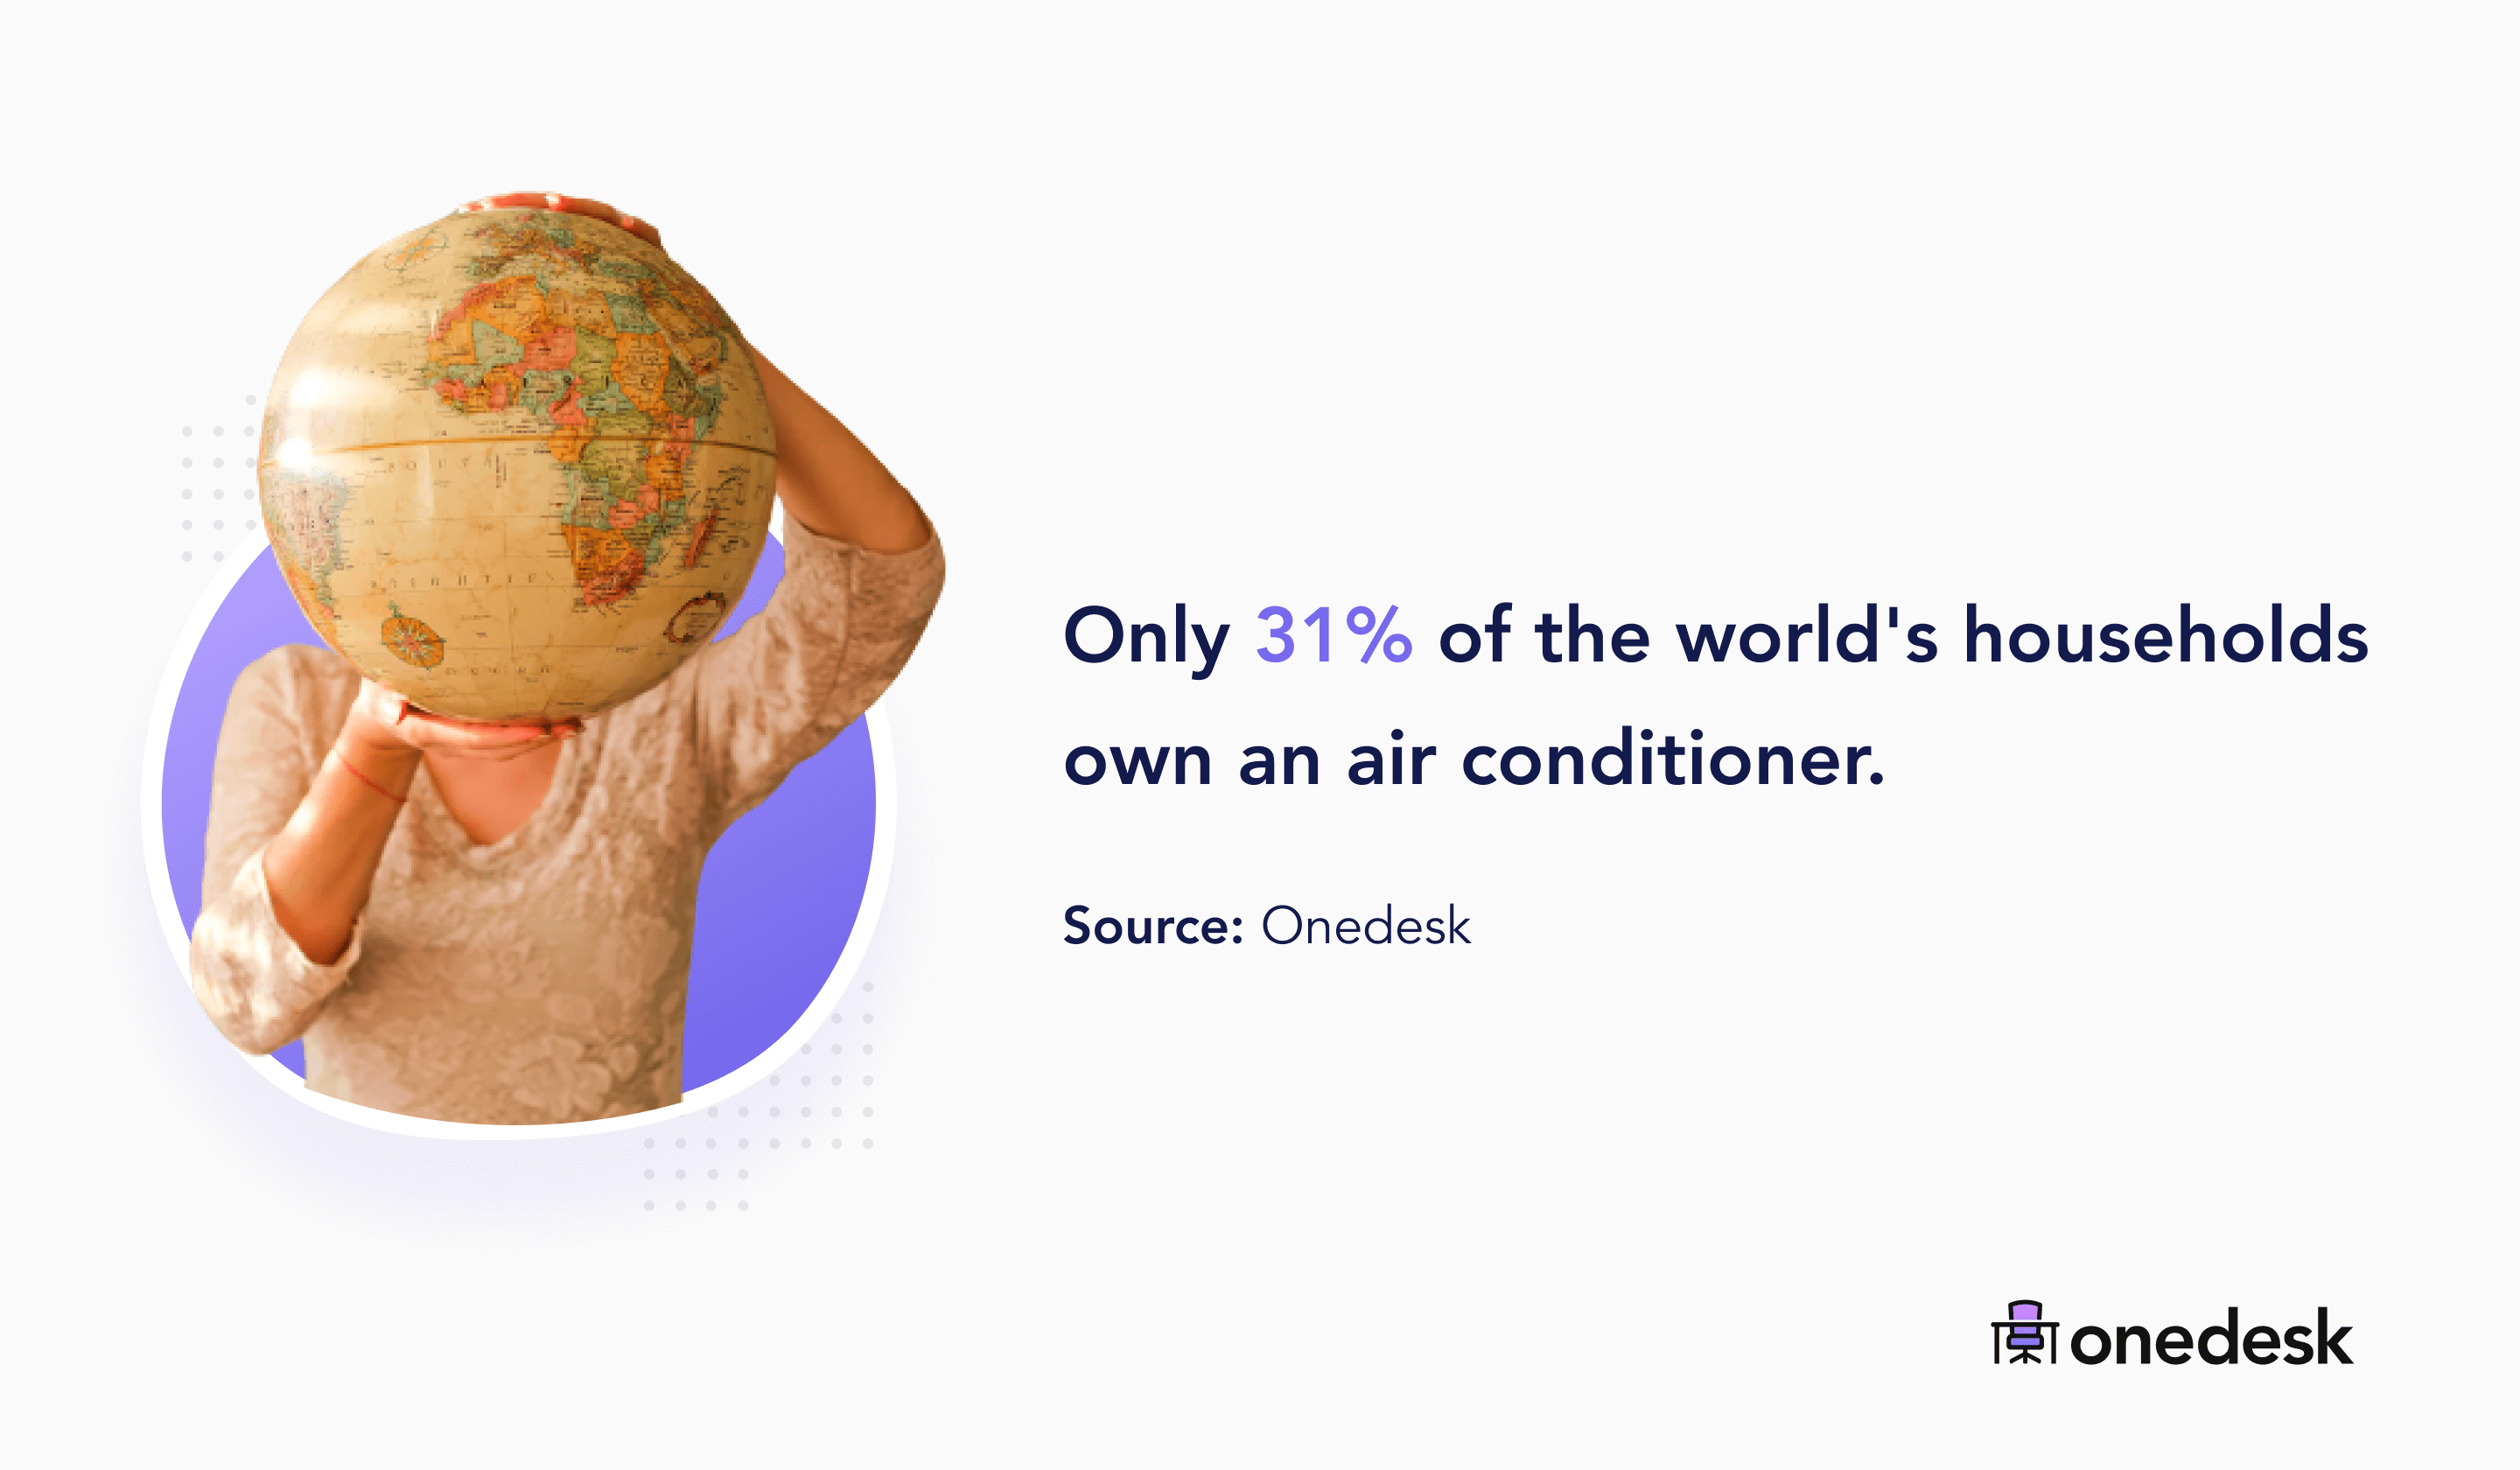 31% of the world's households own an air conditioner